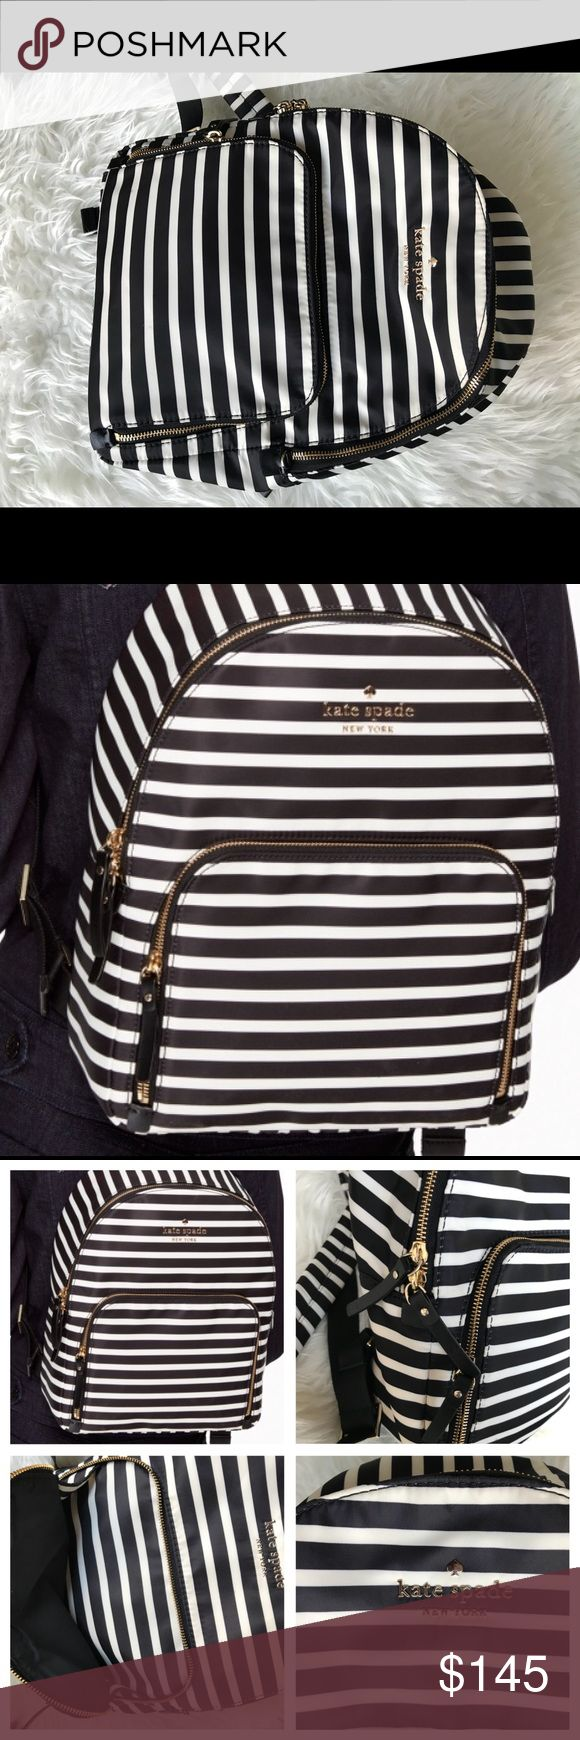 ♠️Kate Spade ♠️ Backpack Watson Lane Hartley ❤️❤️ Kate Spade Backpack Watson Lane Hartley, brand New, without tags, black and white stripes I bought it and the day that I was gonna use it, the part where the shoulder strap is attached came off and I took it to a professional to fix it, check last picture, the original is leather and the other one is the same material as the shoulder strap (not noticeable when using it) Retail $198+tax kate spade Bags Backpacks